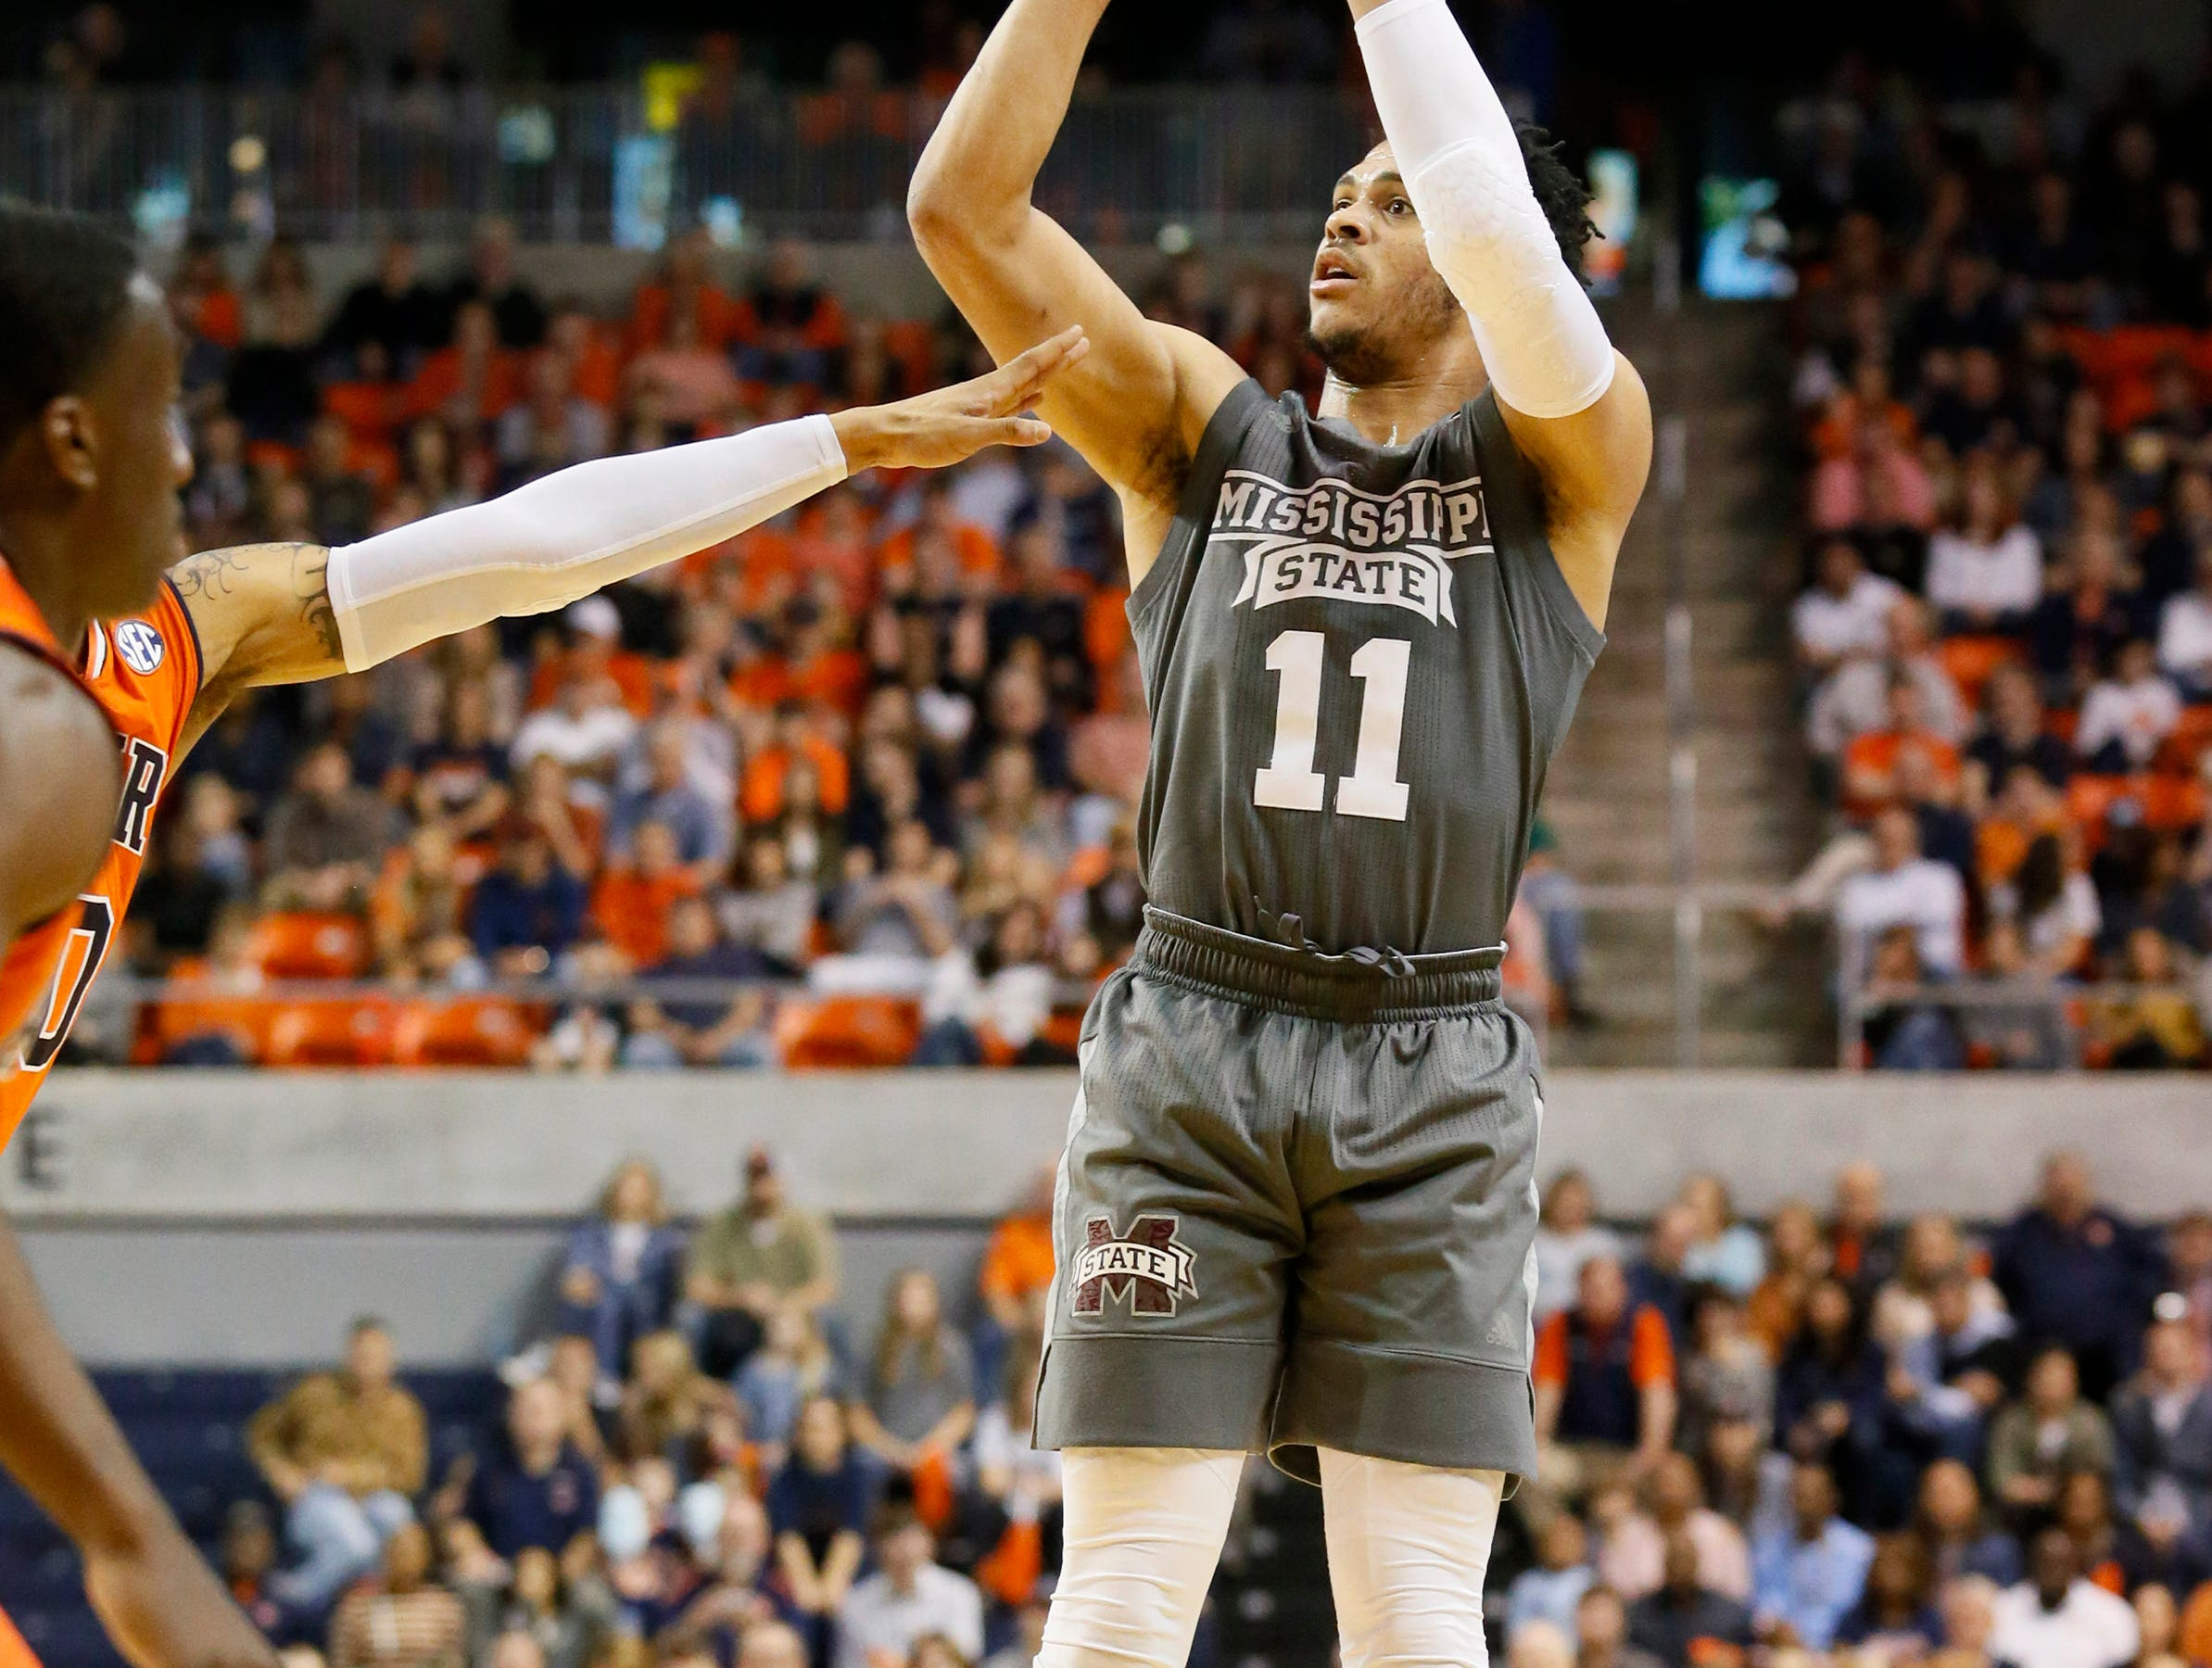 Mar 2, 2019; Auburn, AL, USA; Mississippi State Bulldogs guard Quinndary Weatherspoon (11) takes a shot against the Auburn Tigers during the first half at Auburn Arena. Mandatory Credit: John Reed-USA TODAY Sports